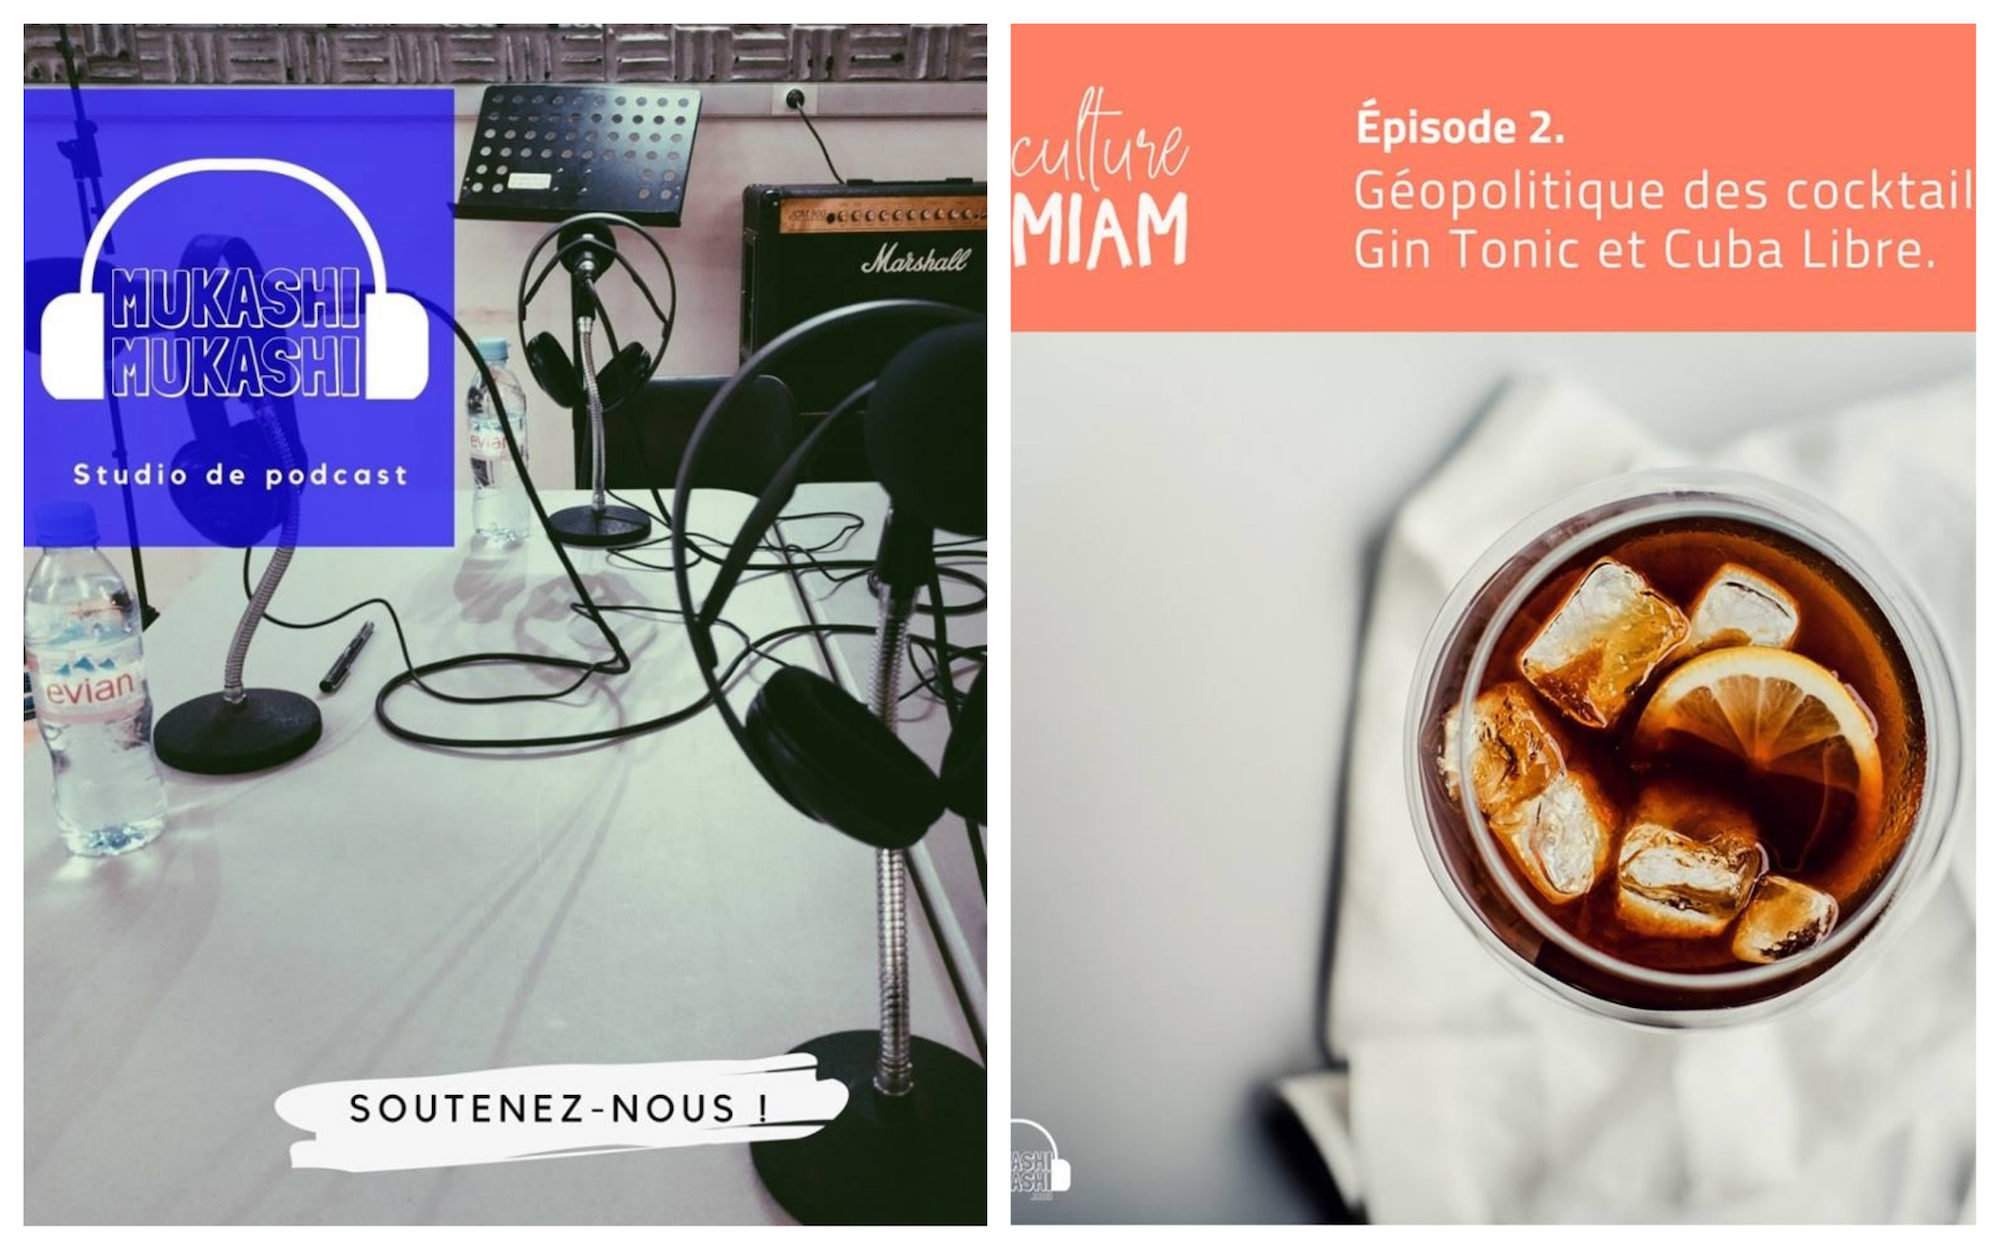 HiP Paris Blog rounds up the best French podcasts to listen to this summer like Mukashi Mukashi (left) and Culture Miam all about food and drink (right).